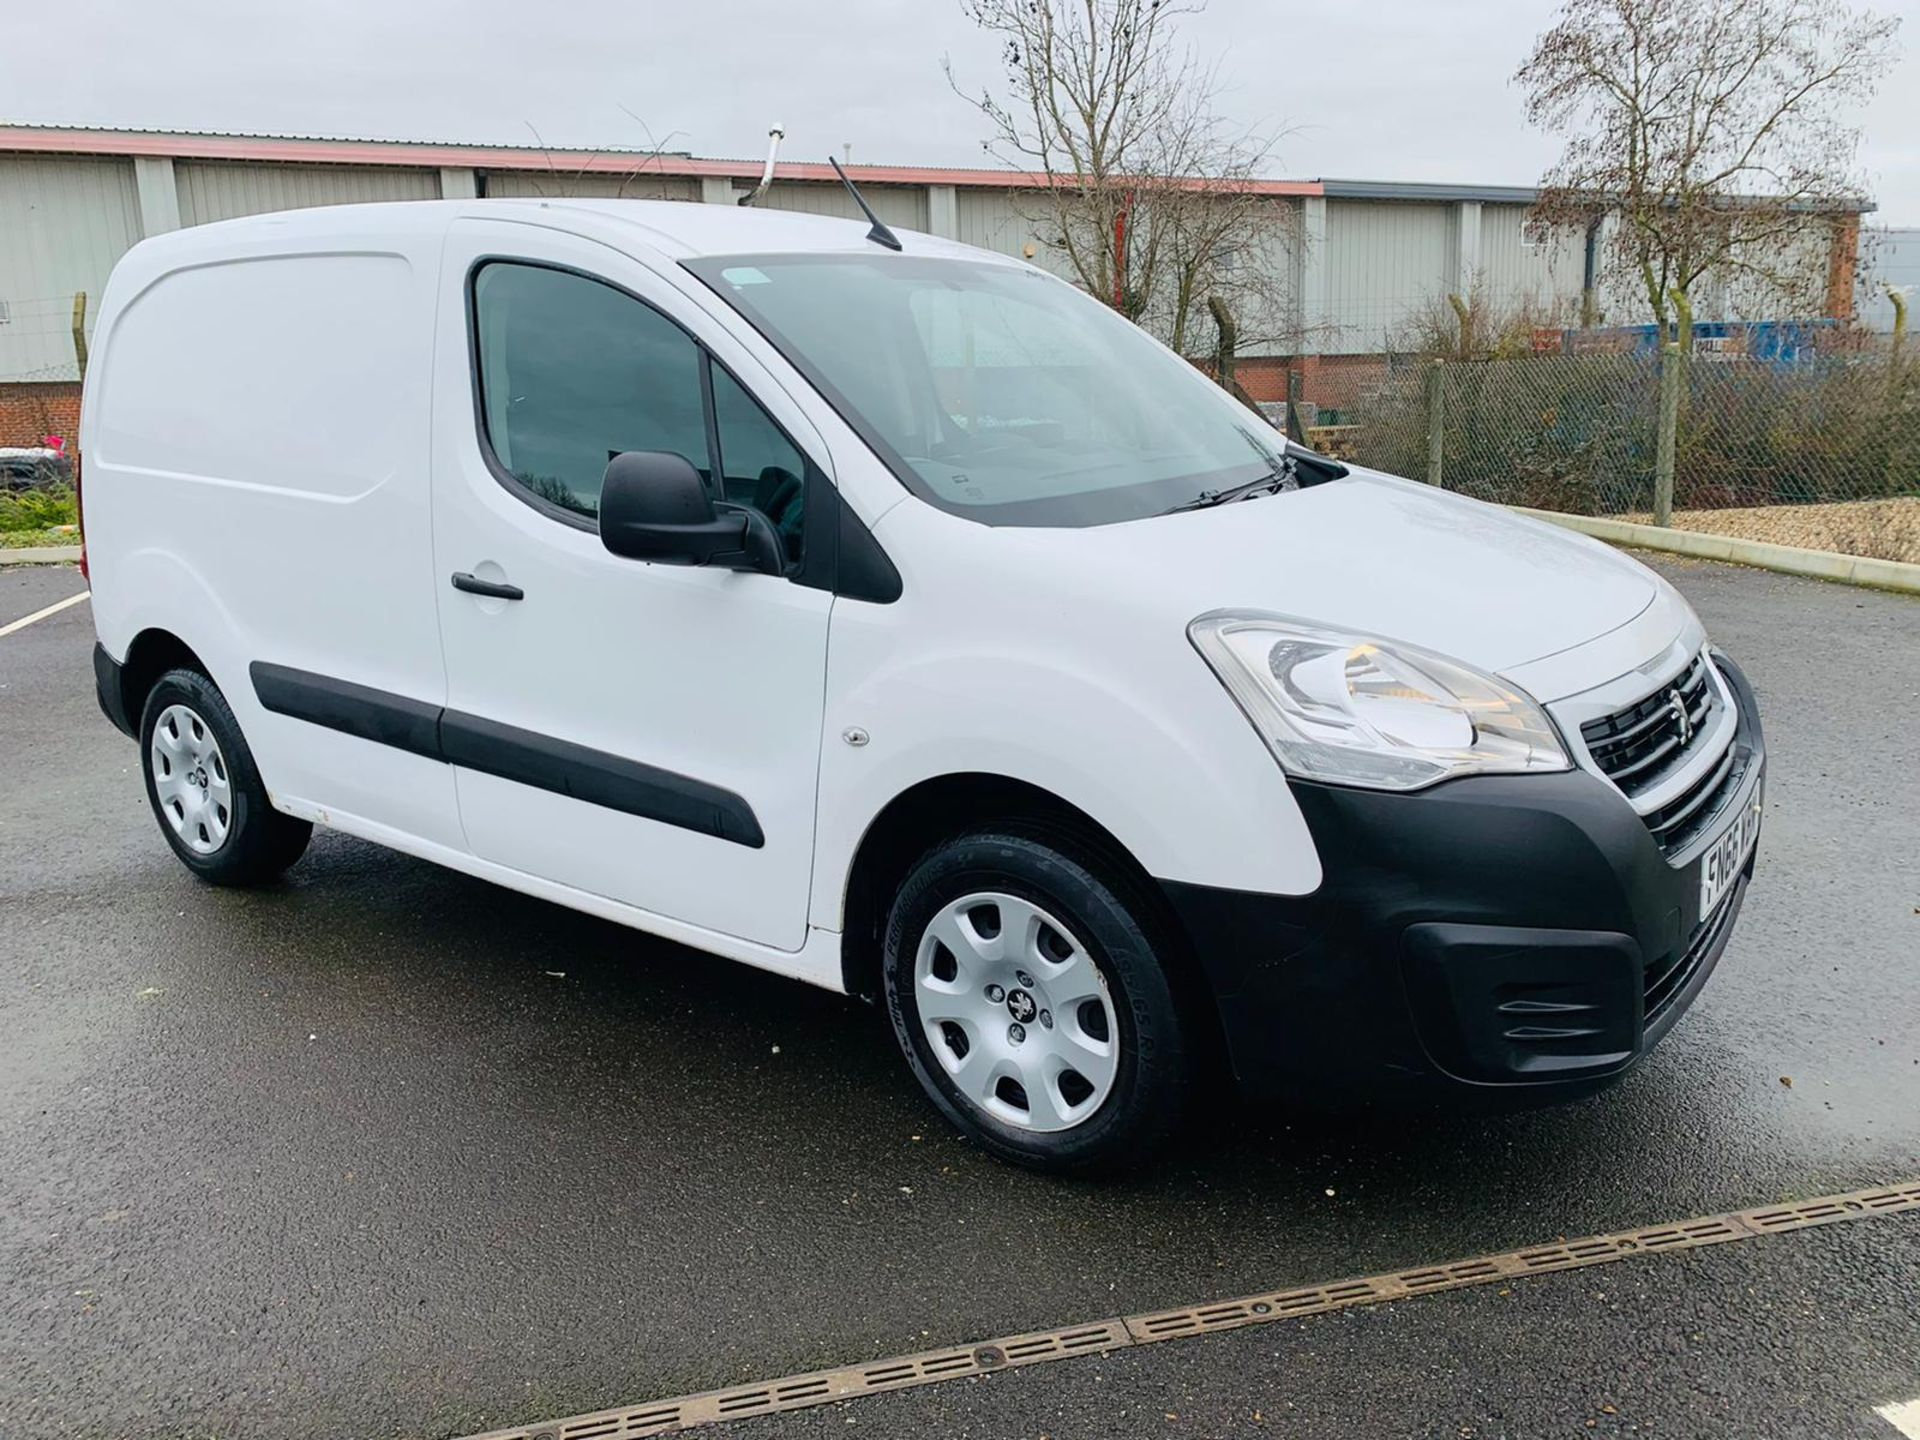 (RESERVE MET) Peugeot Partner 1.6 HDI Professional - 2017 Model - Air Con - Service History - Image 2 of 22